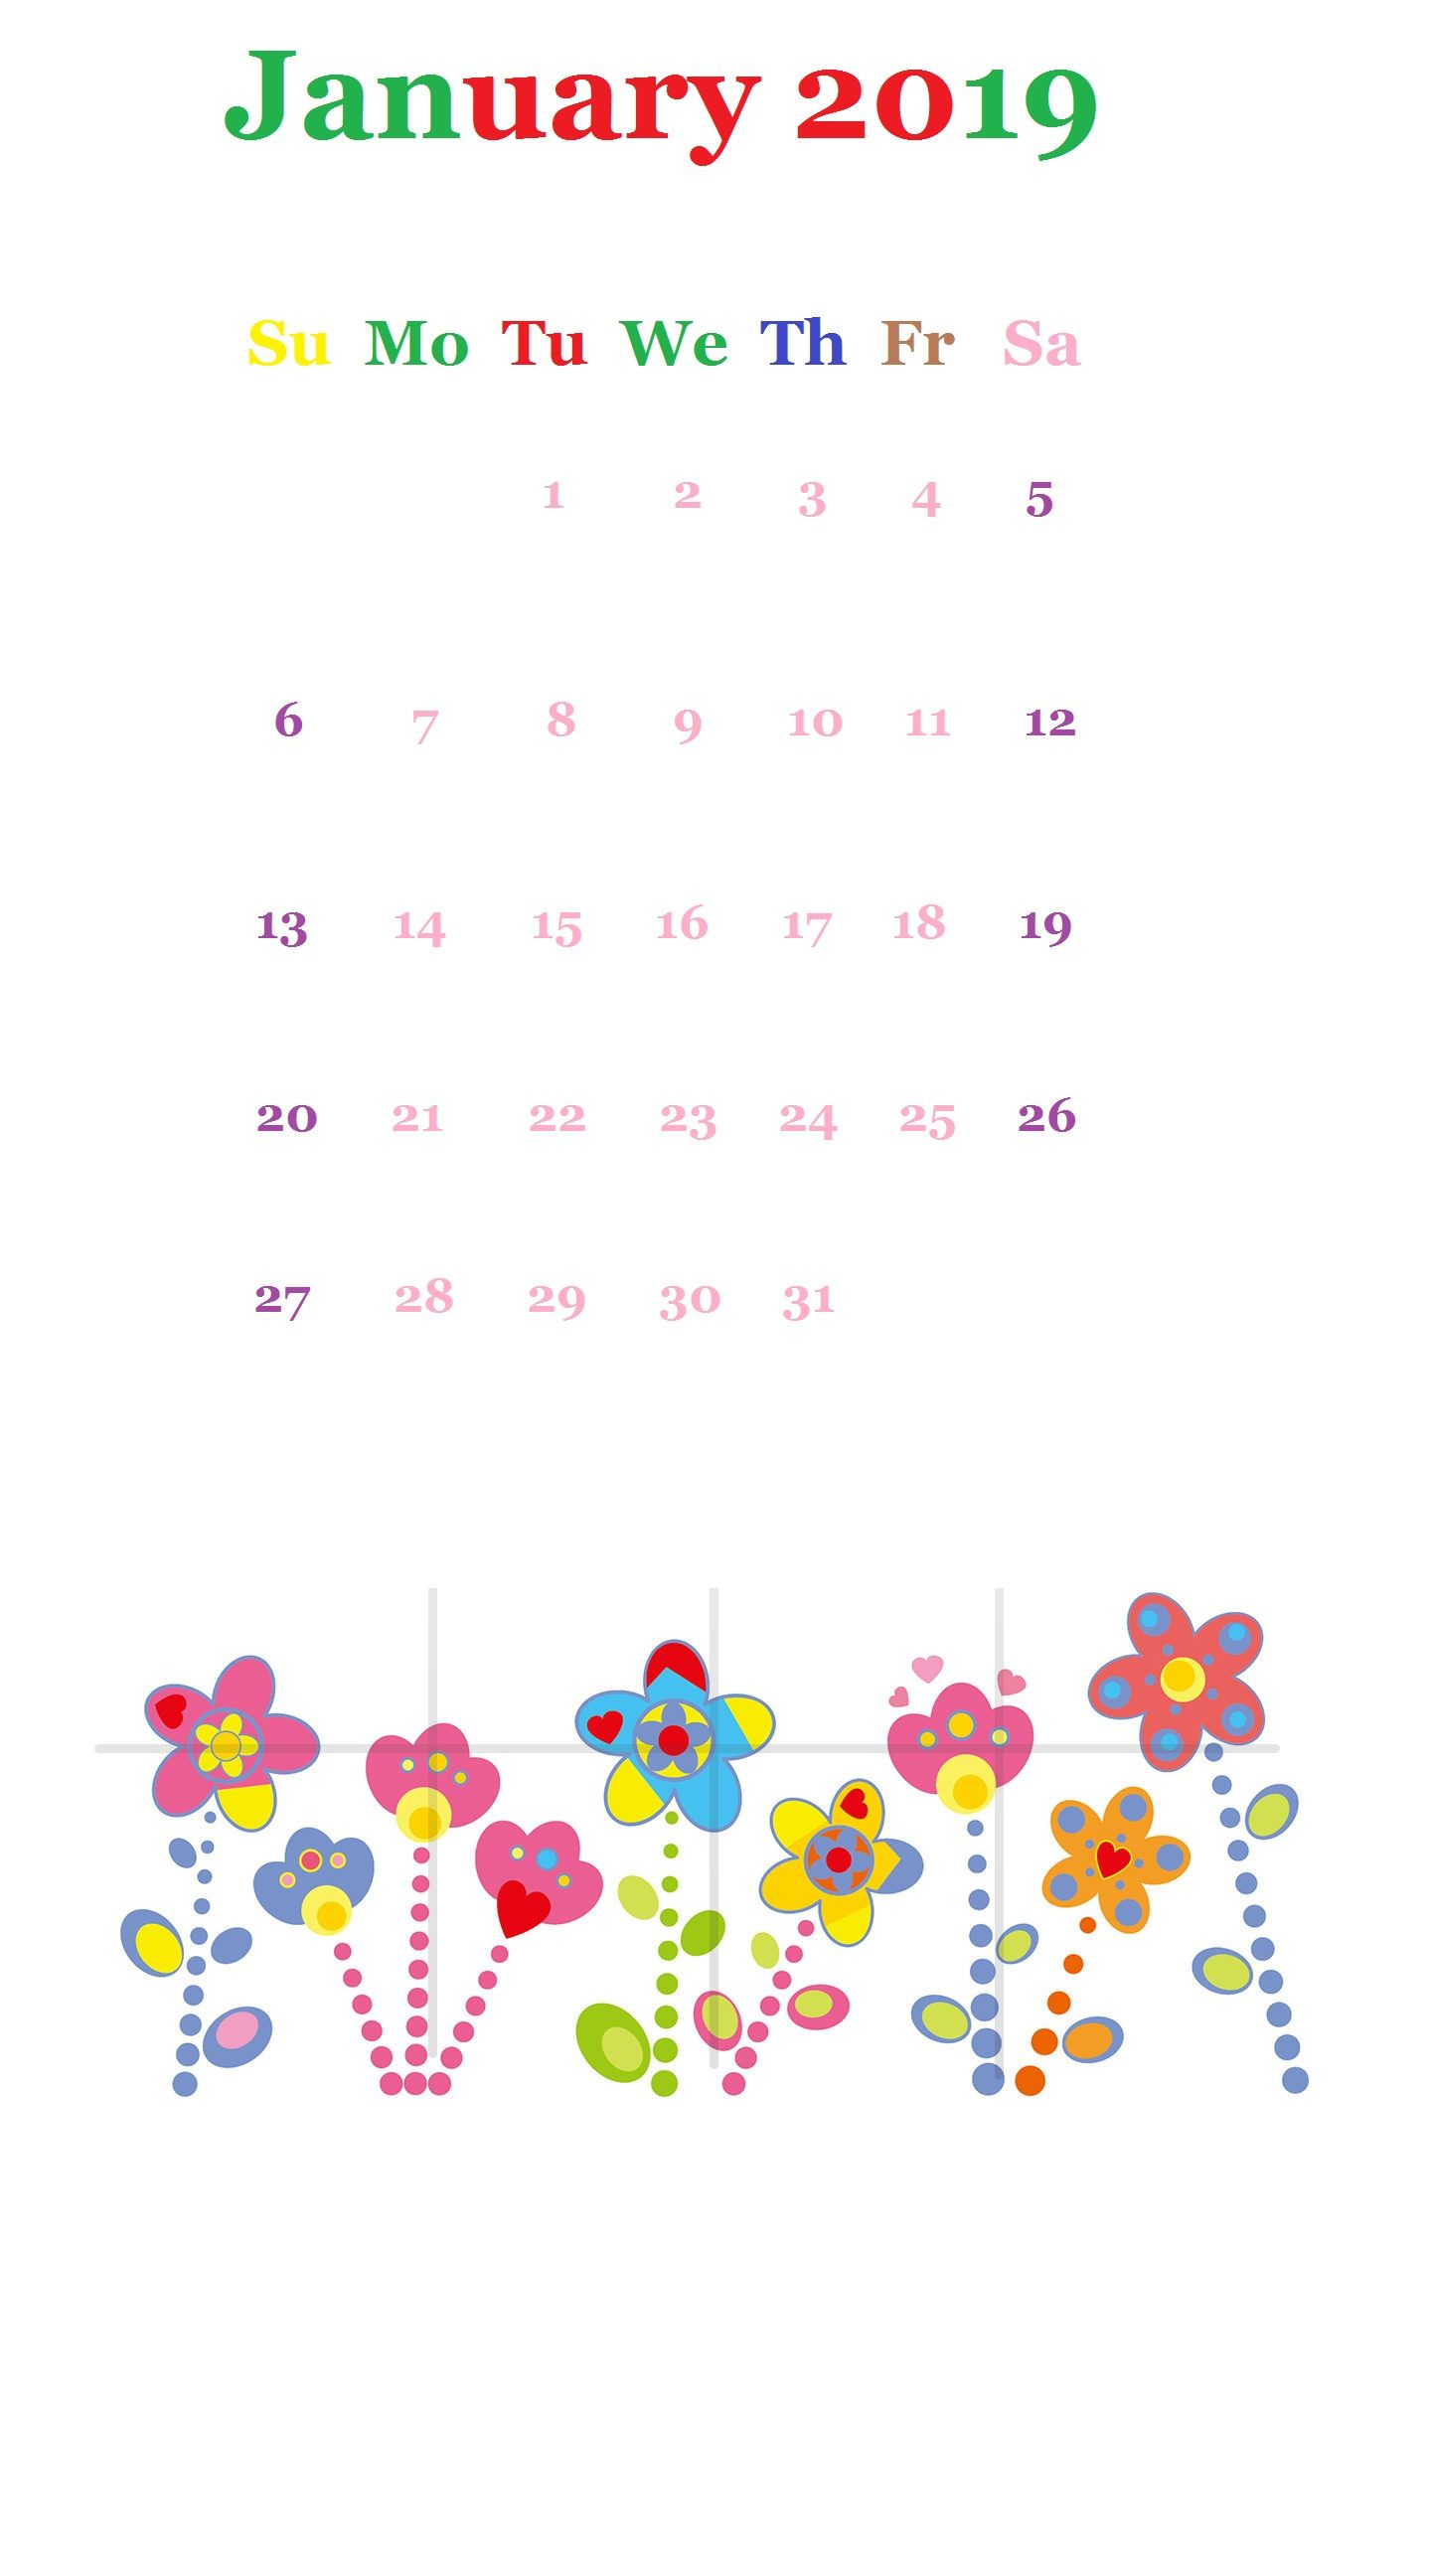 January 2019 iPhone Calendar Wallpaper (With images